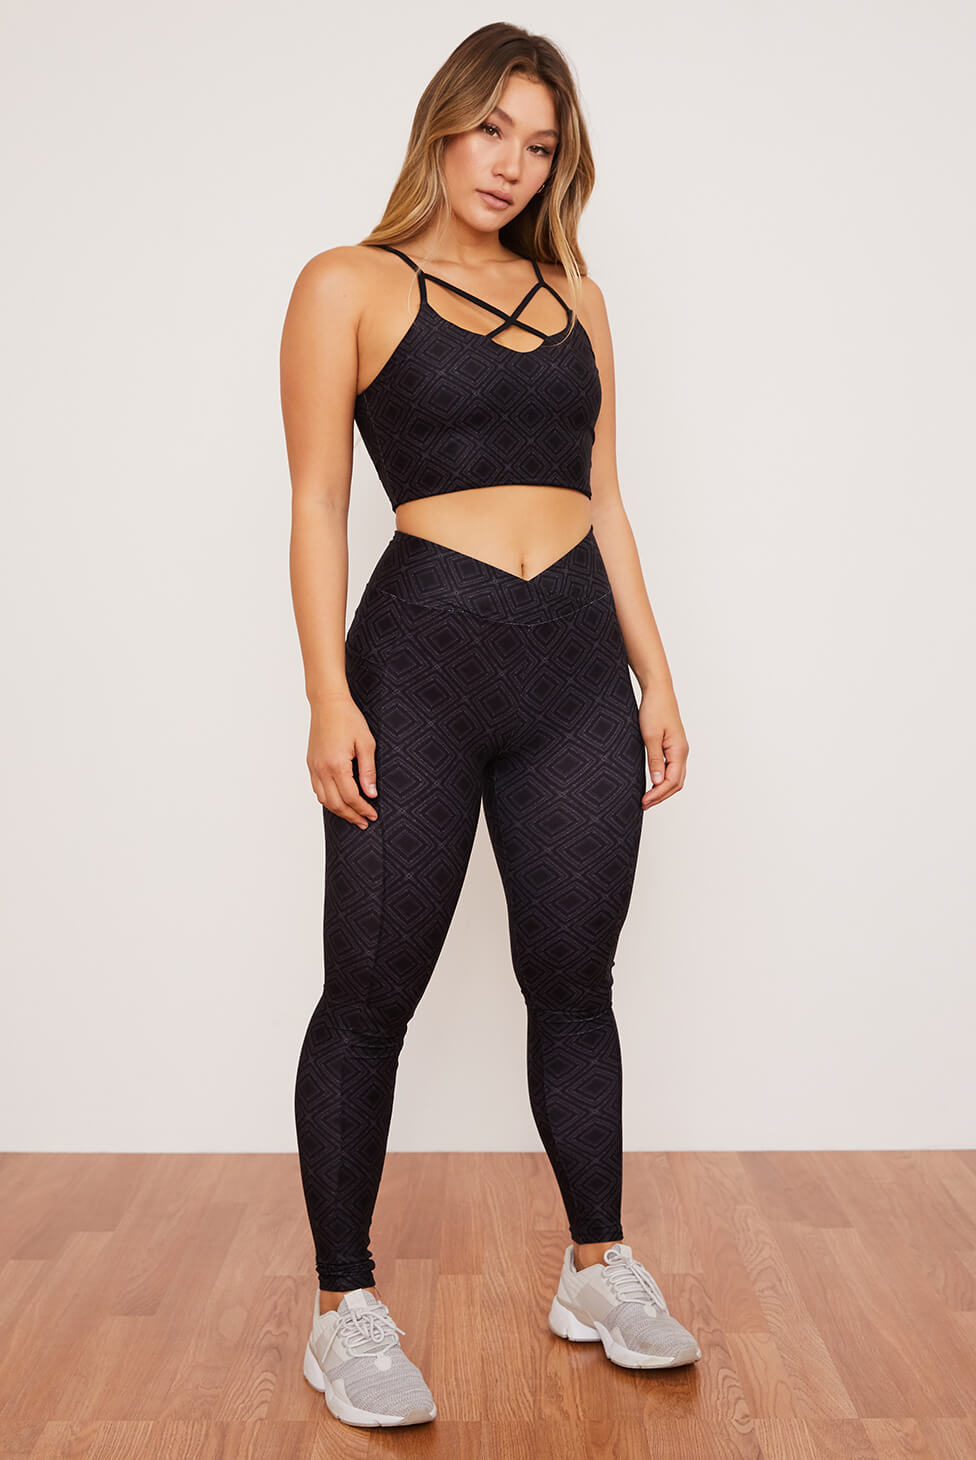 Summit Crossover Pocket Legging